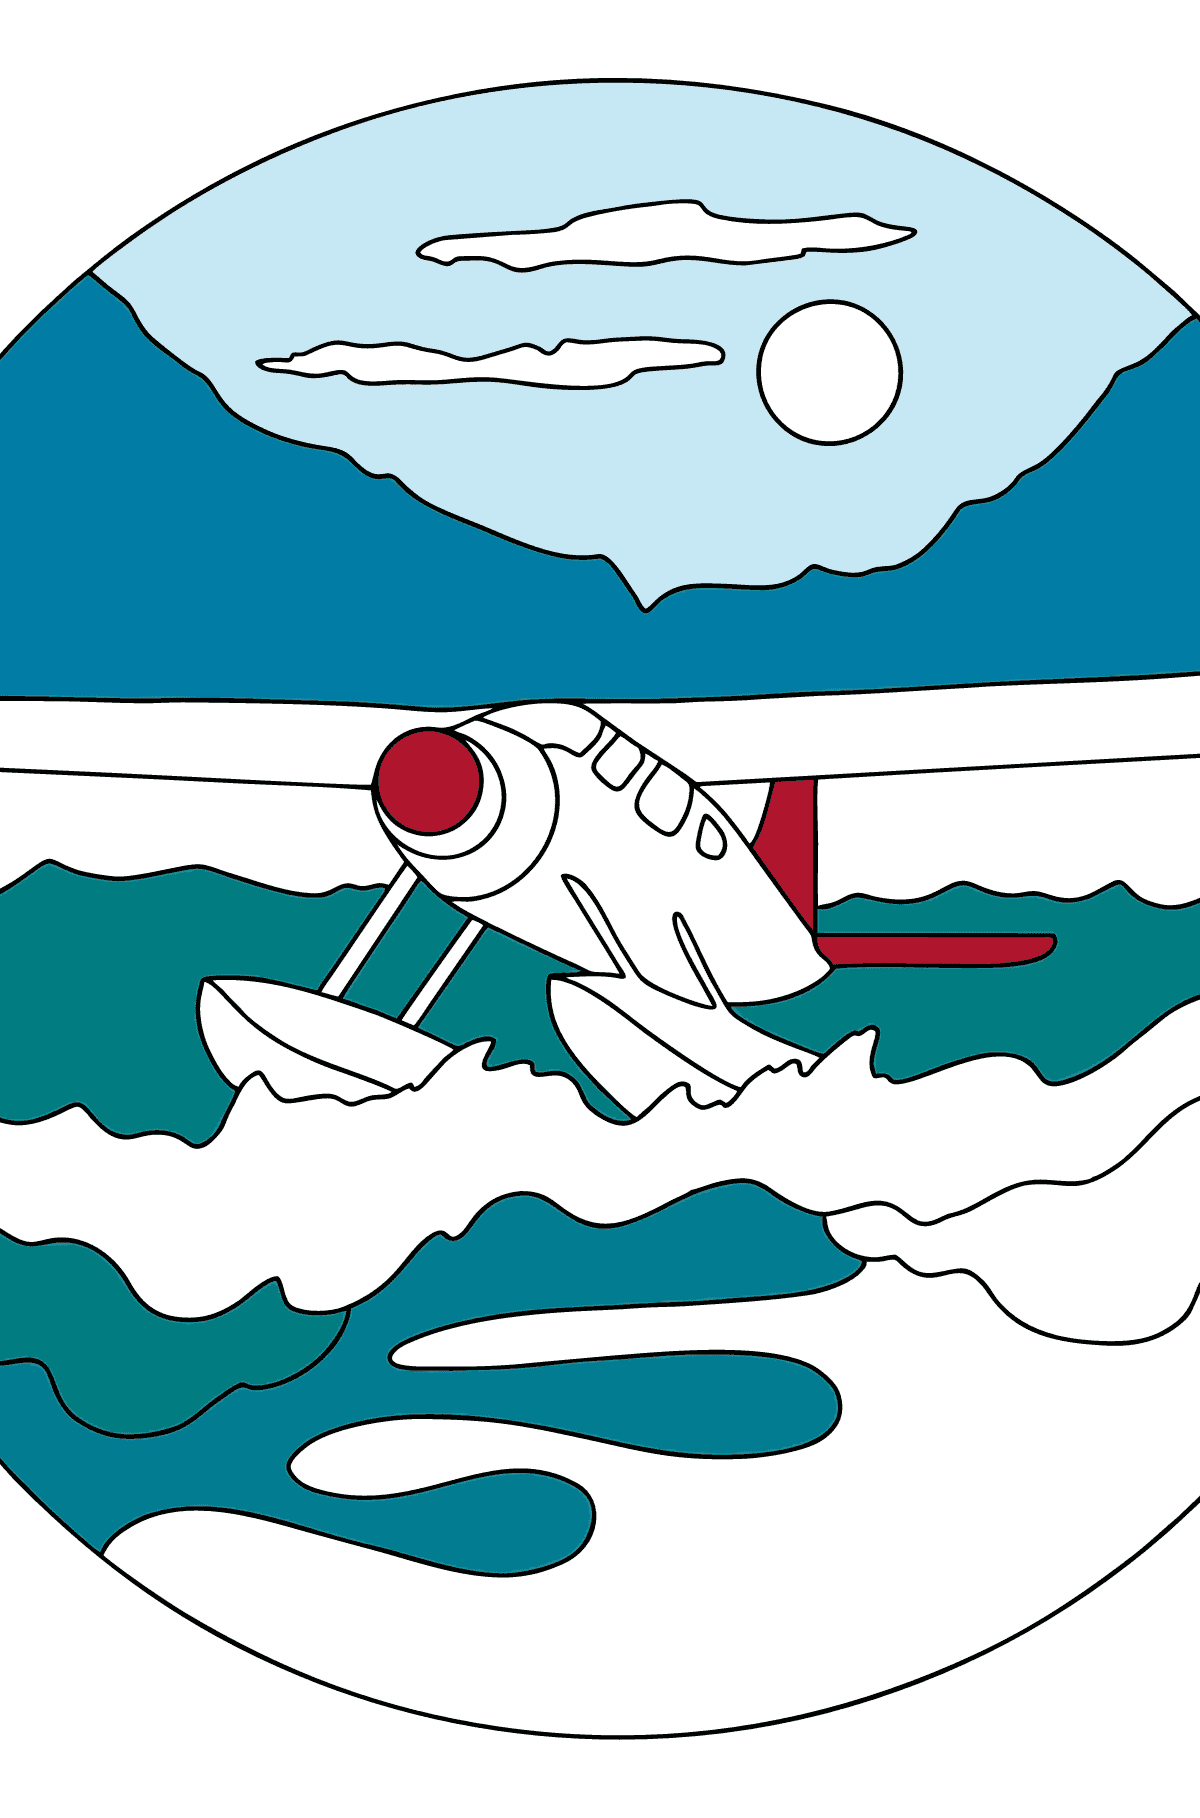 Coloring Page - A Hydroplane - Coloring Pages for Children